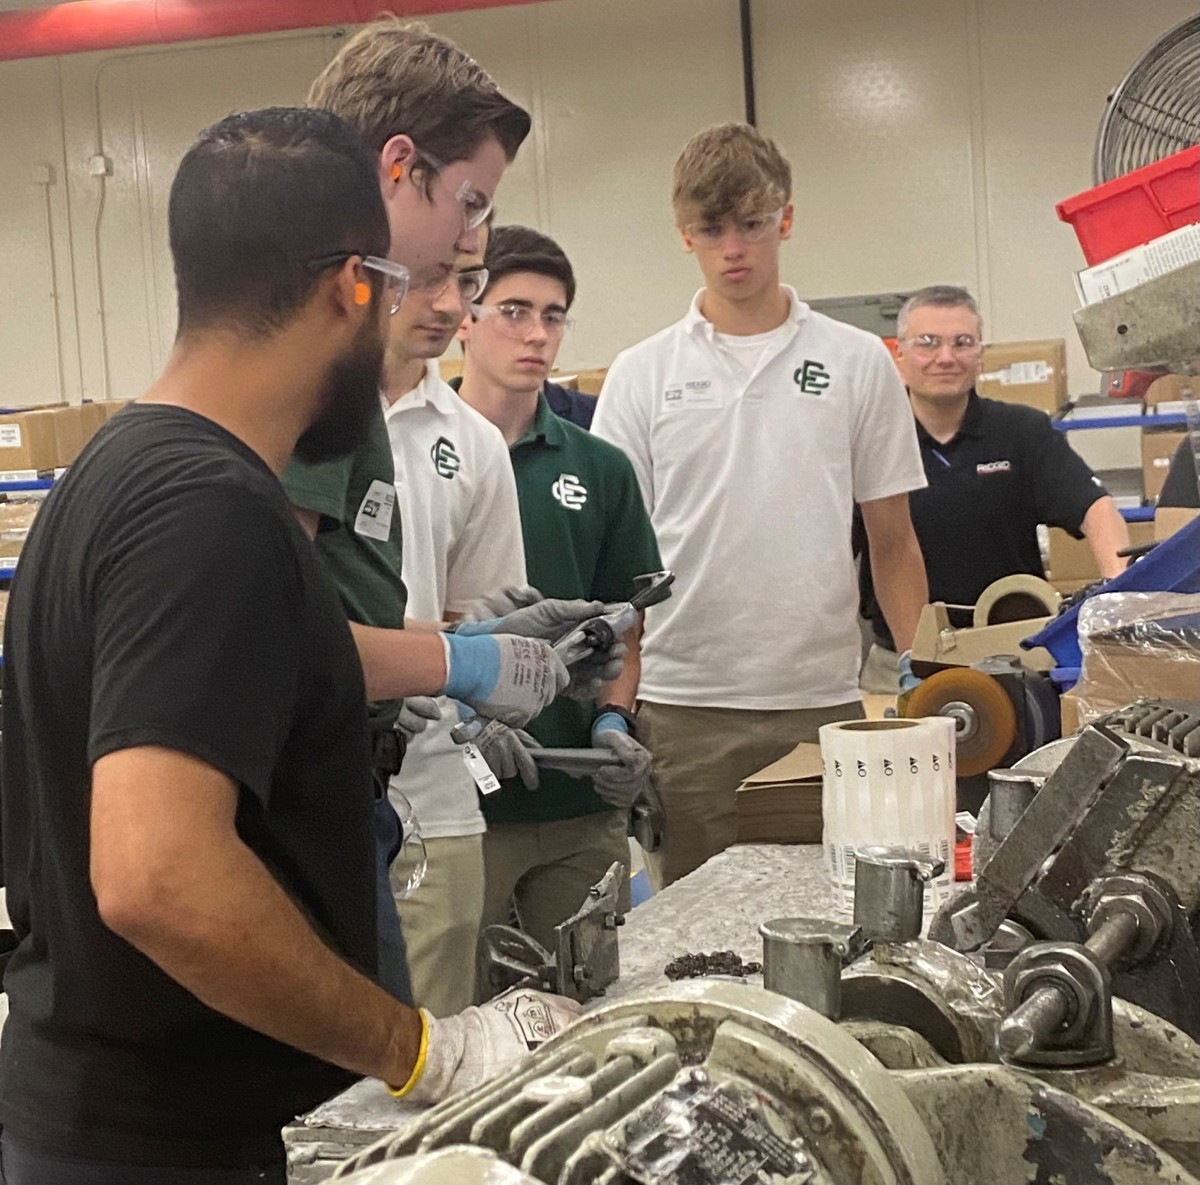 Students gain insight into career opportunities offered at Lorain County technical and manufacturing companies.